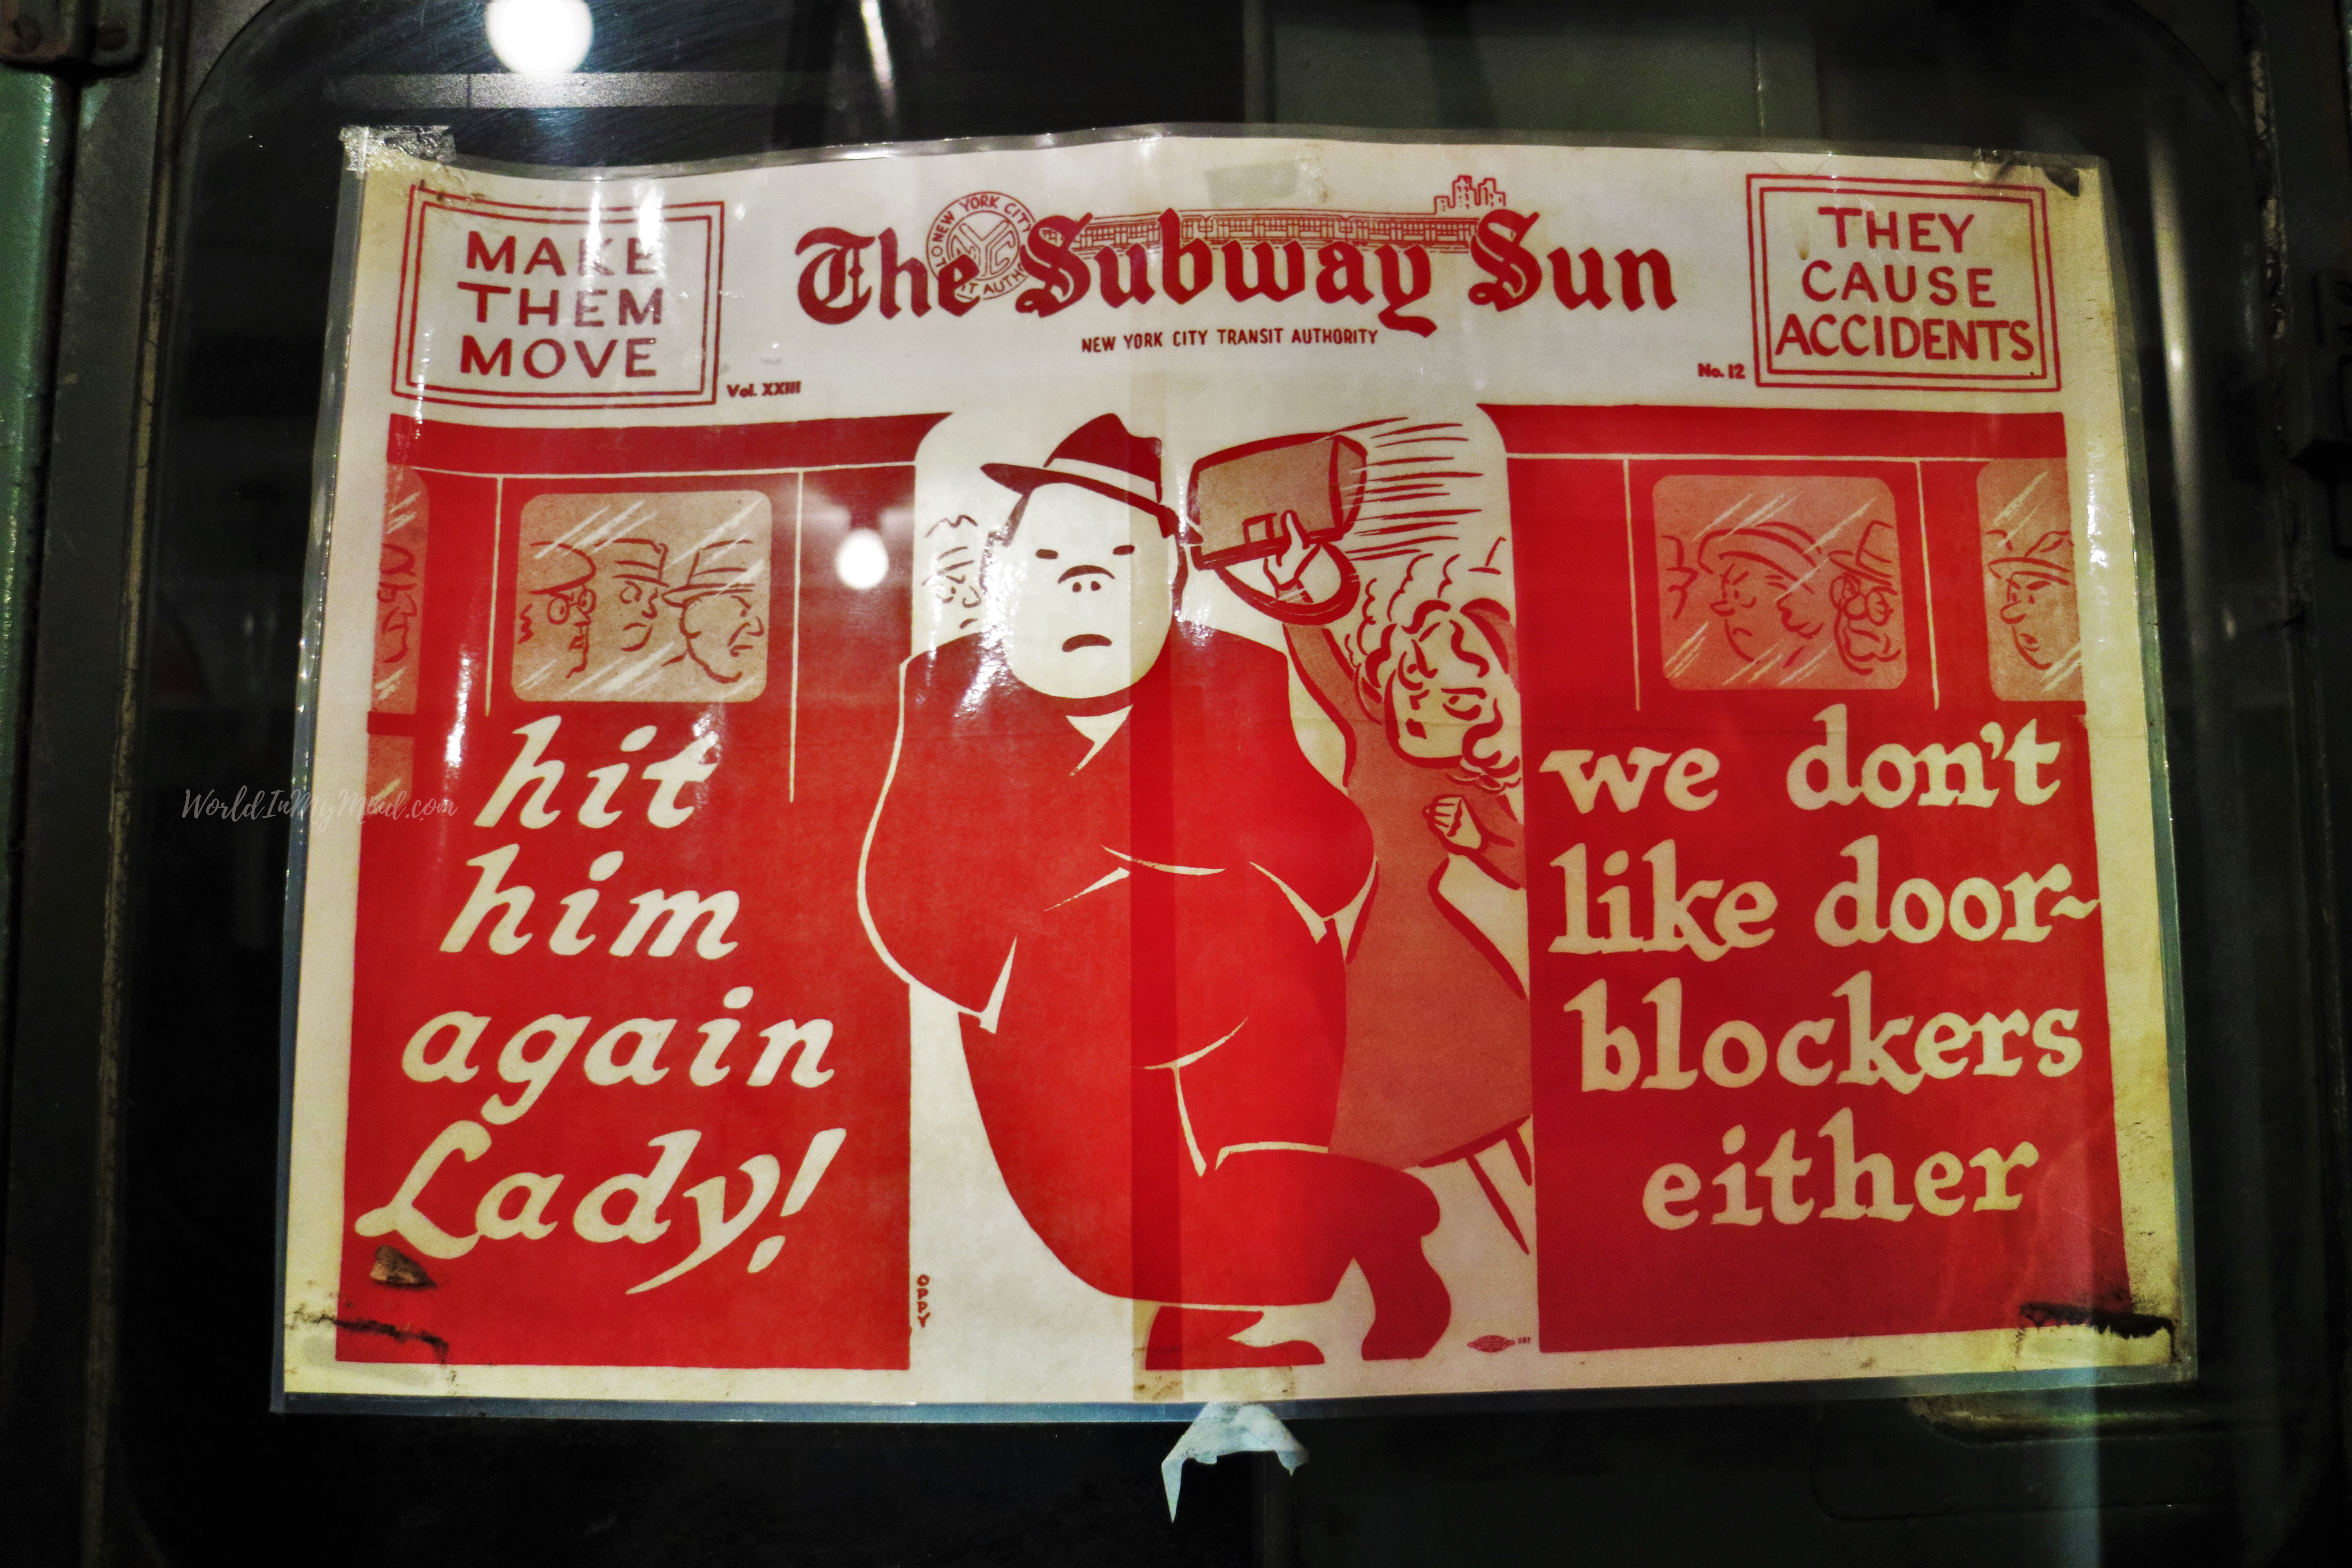 Vintage subway ad, New York